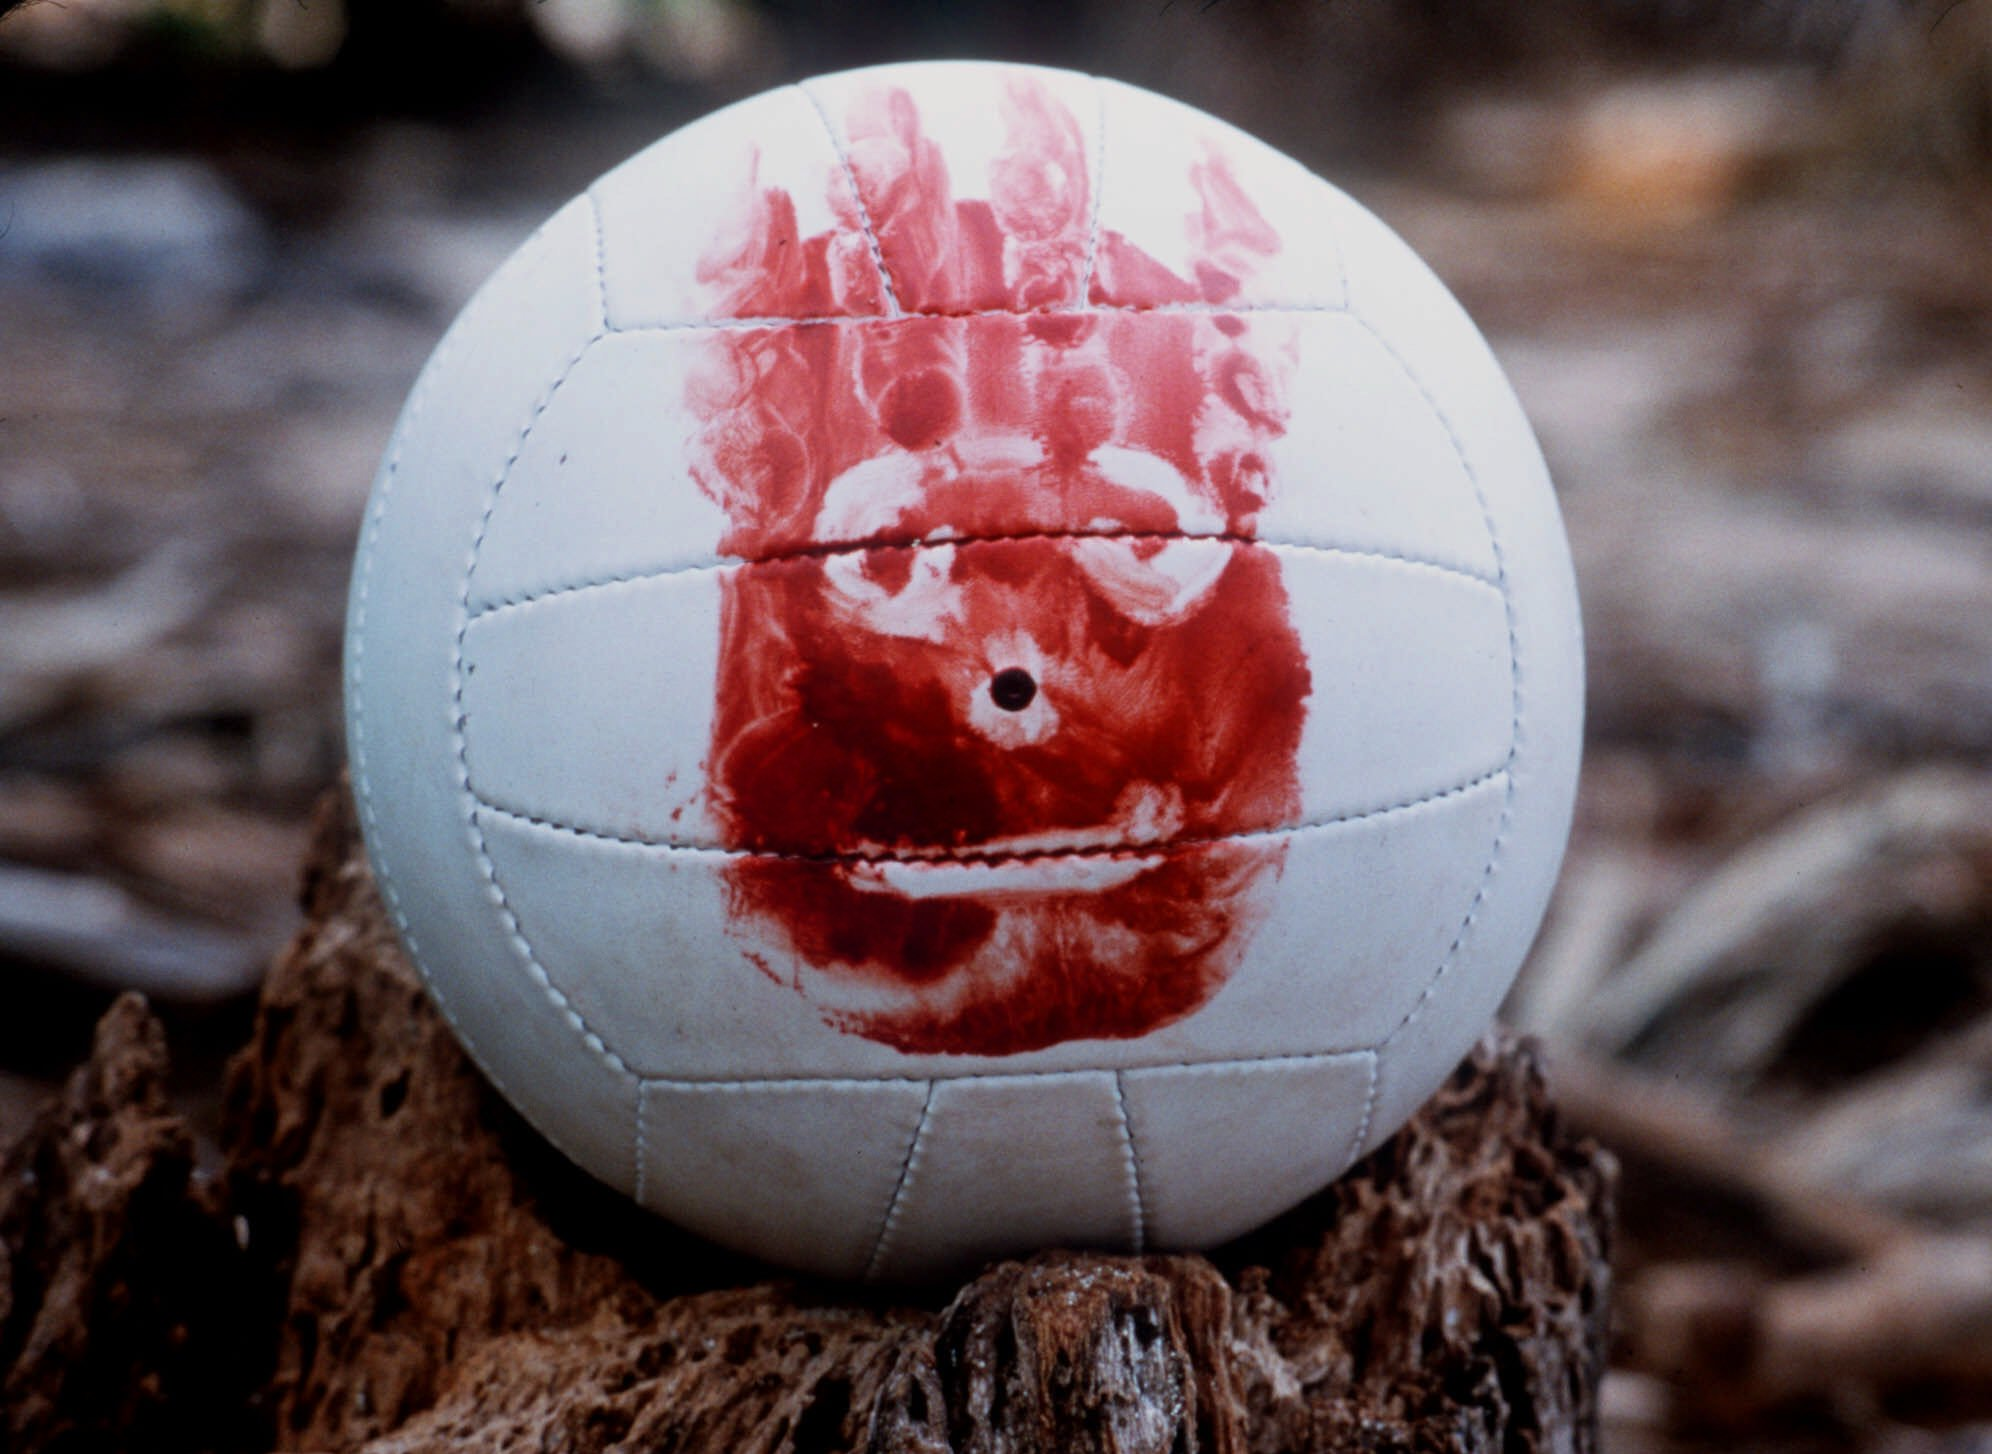 cast-away-wilson-volleyball1.jpg